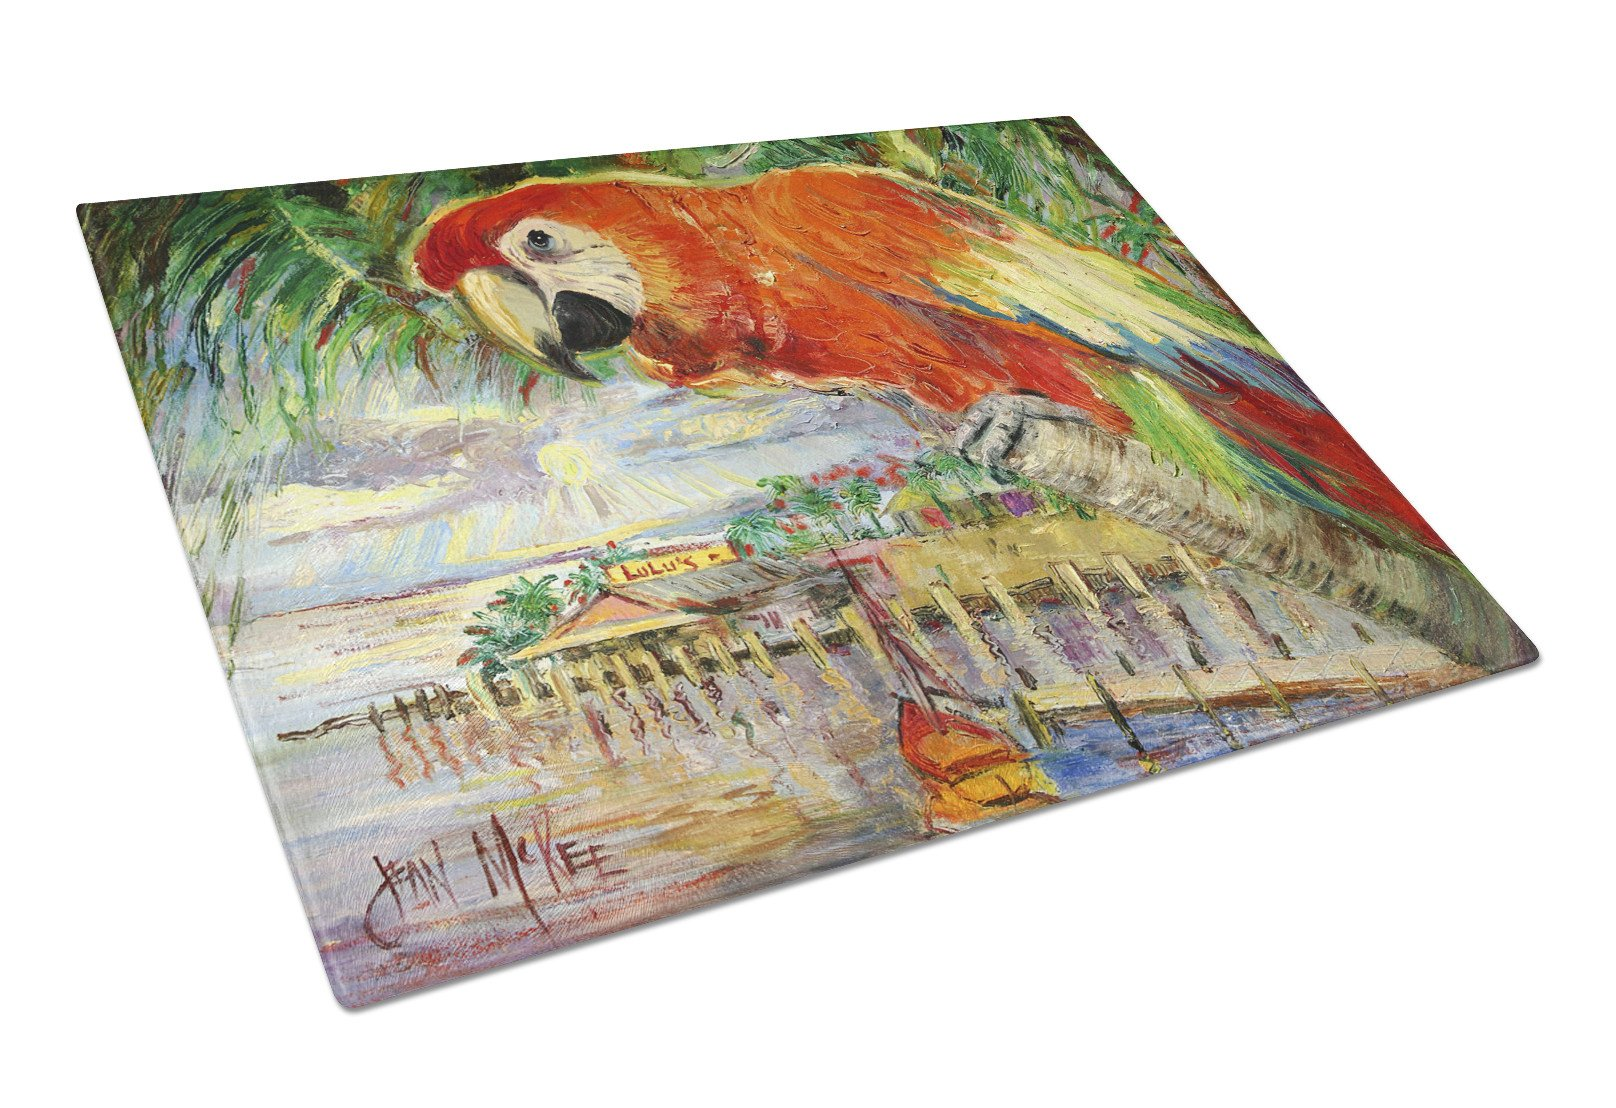 Red Parrot at Lulu's Glass Cutting Board Large JMK1134LCB by Caroline's Treasures